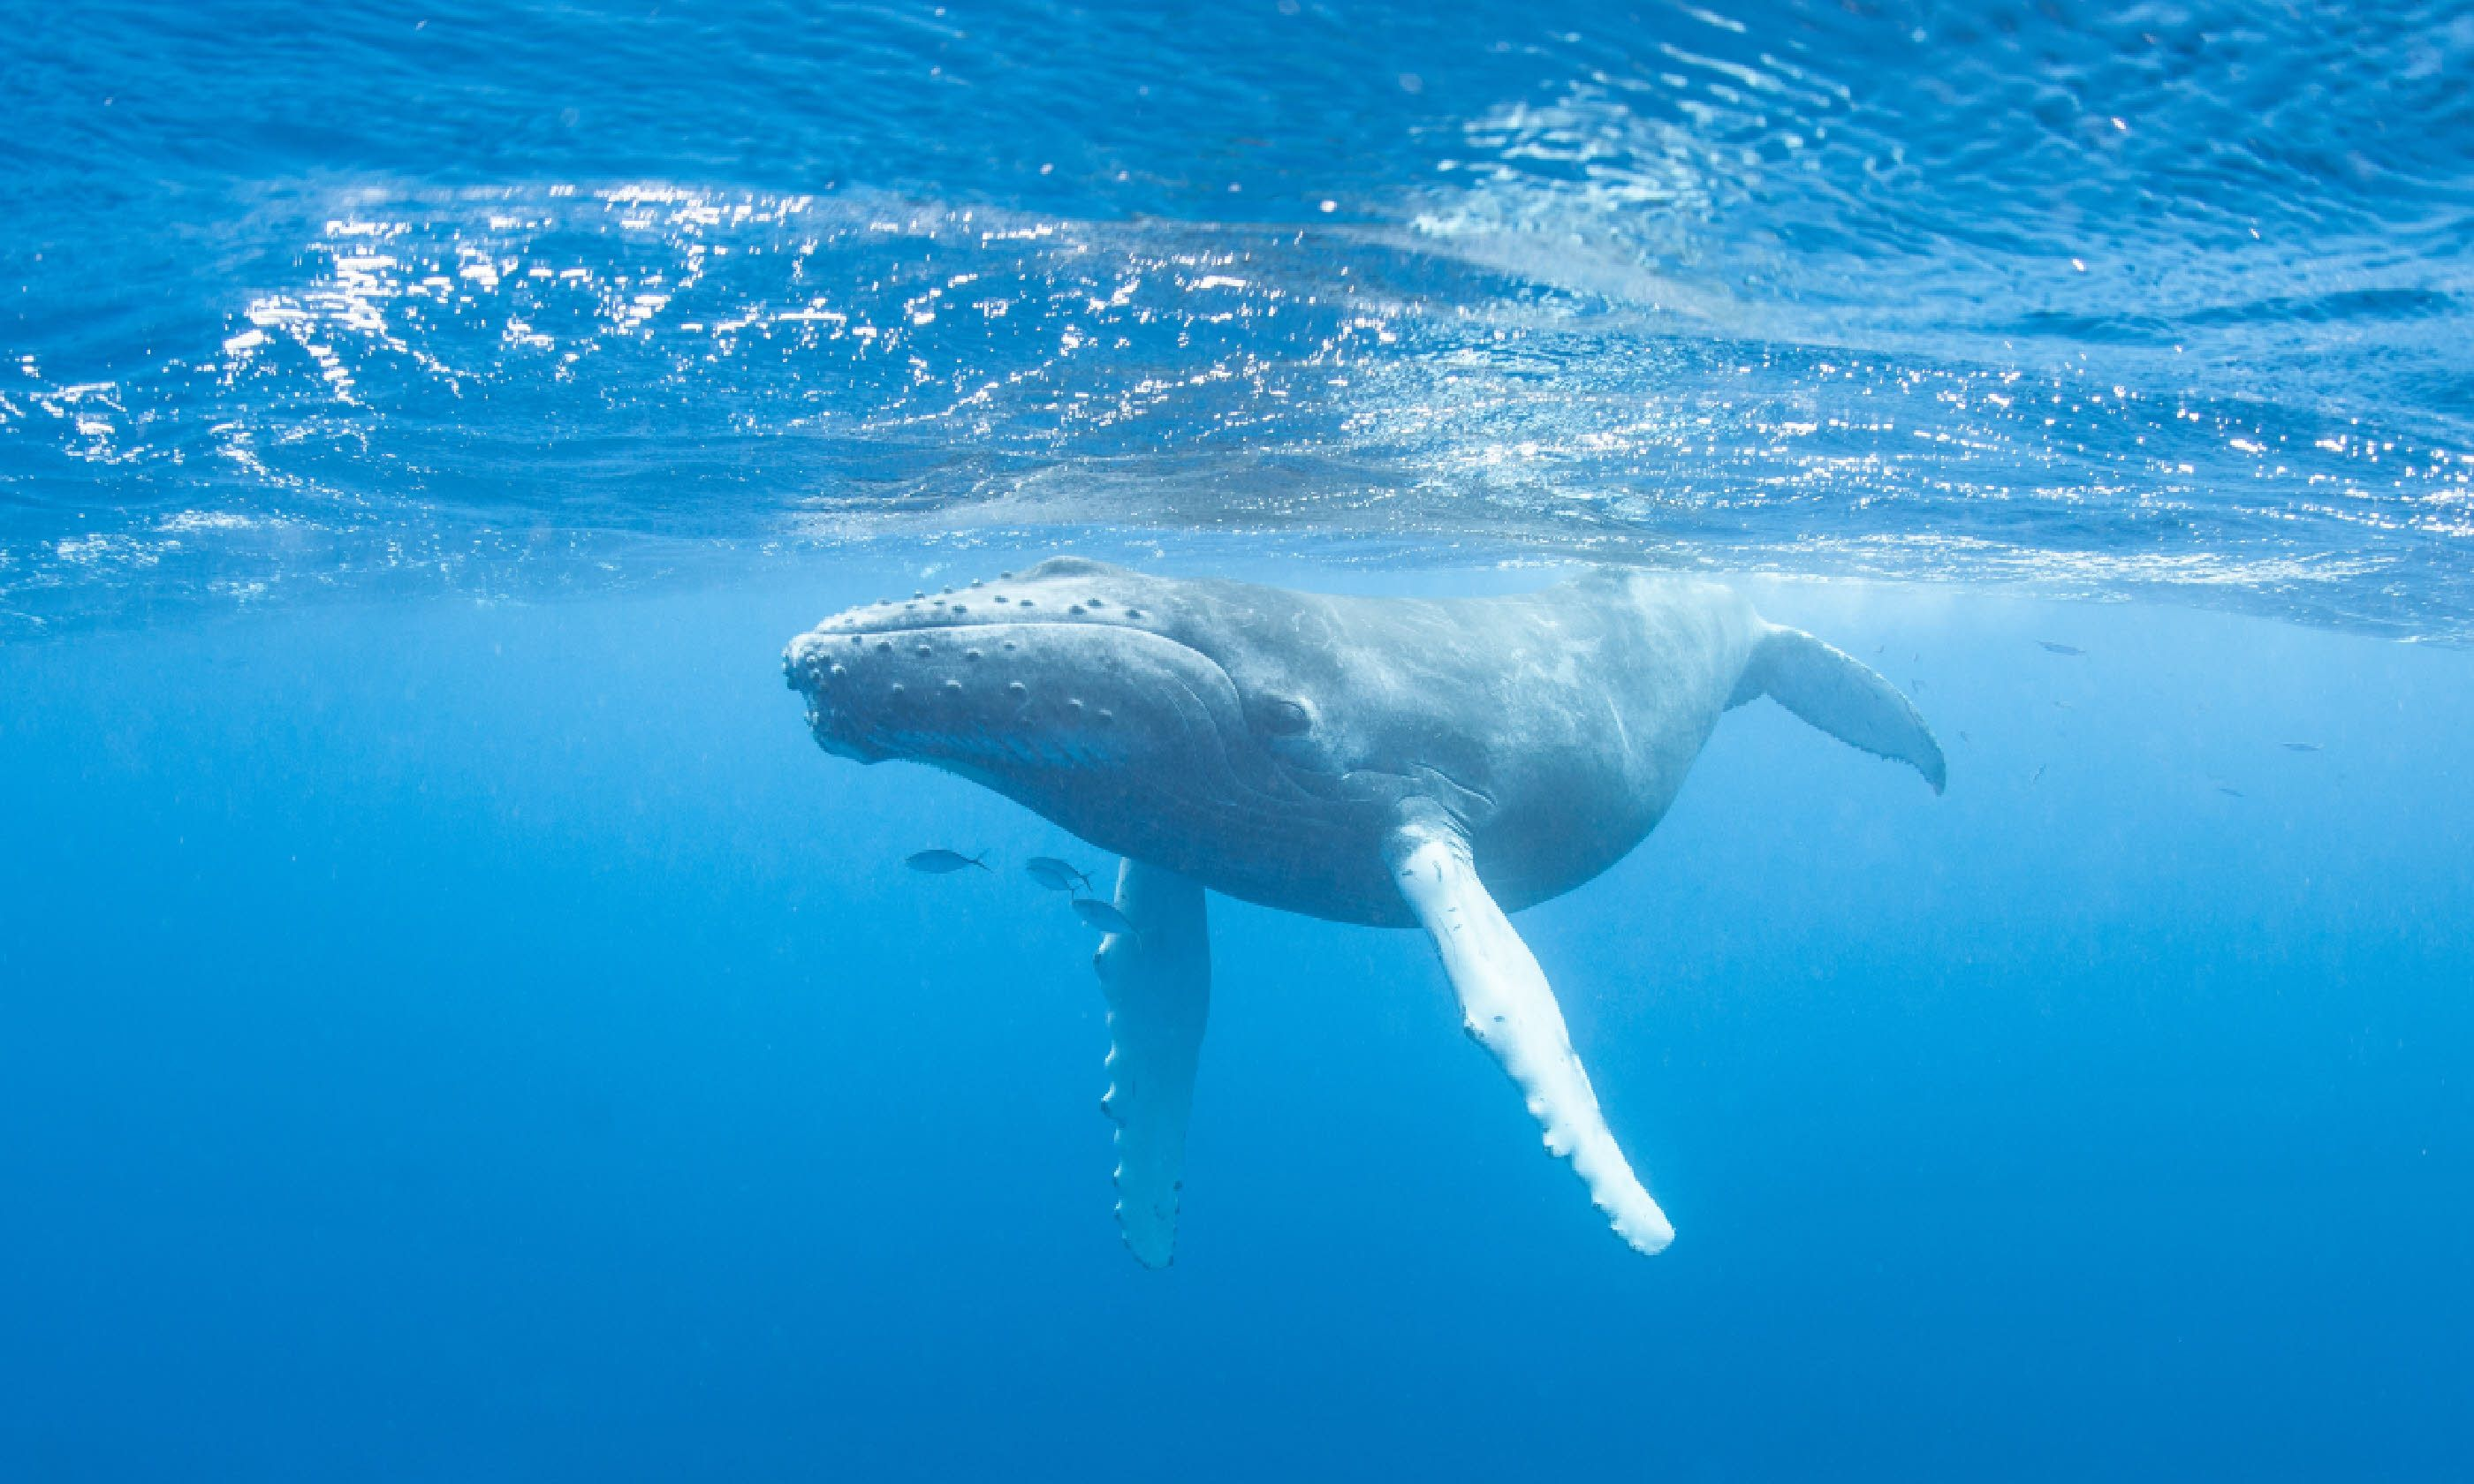 A young Humpback whale swims at the surface of the Caribbean Sea (Shutterstock)